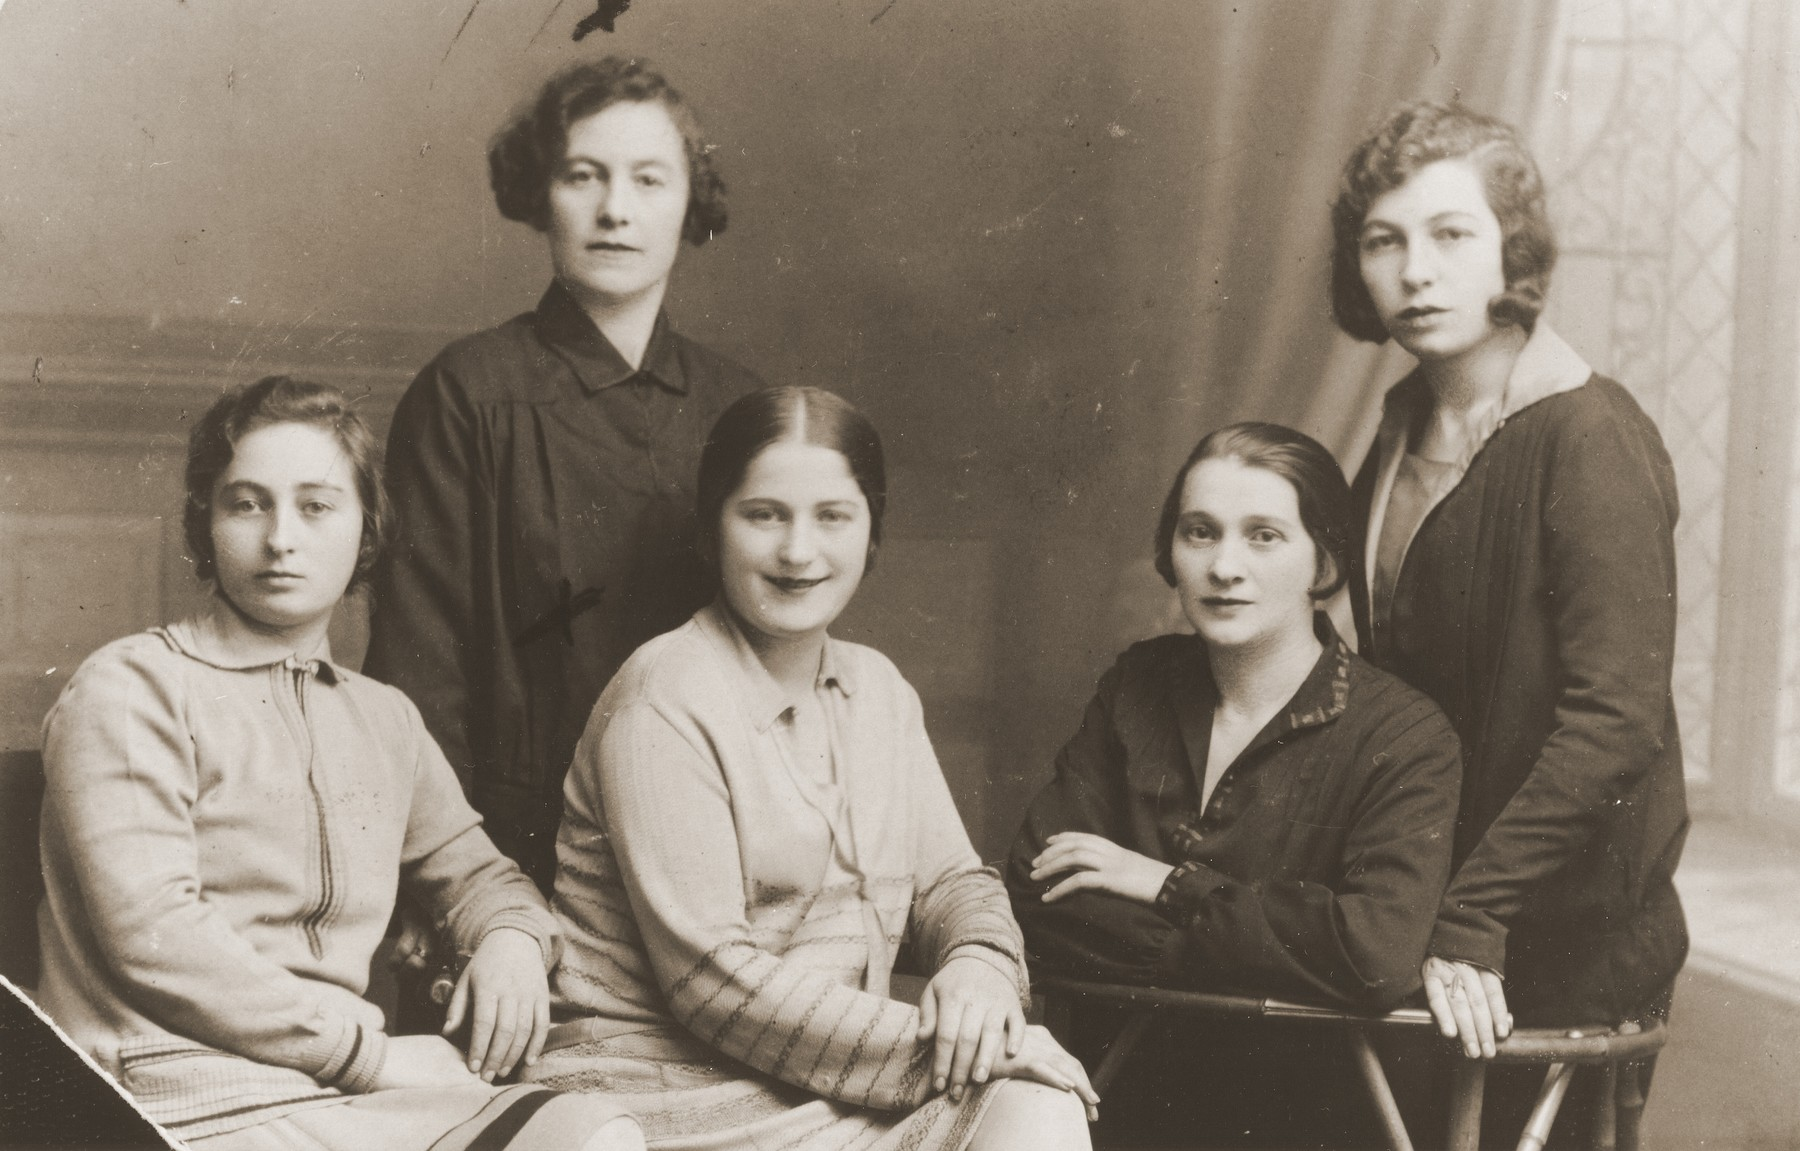 Studio portrait of Jewish cousins in Goloby, Poland.  Pictured are Tzena  Leikach (far right), Eta Leikach (far left) and their cousins Leah Guss and Clara Erlich.